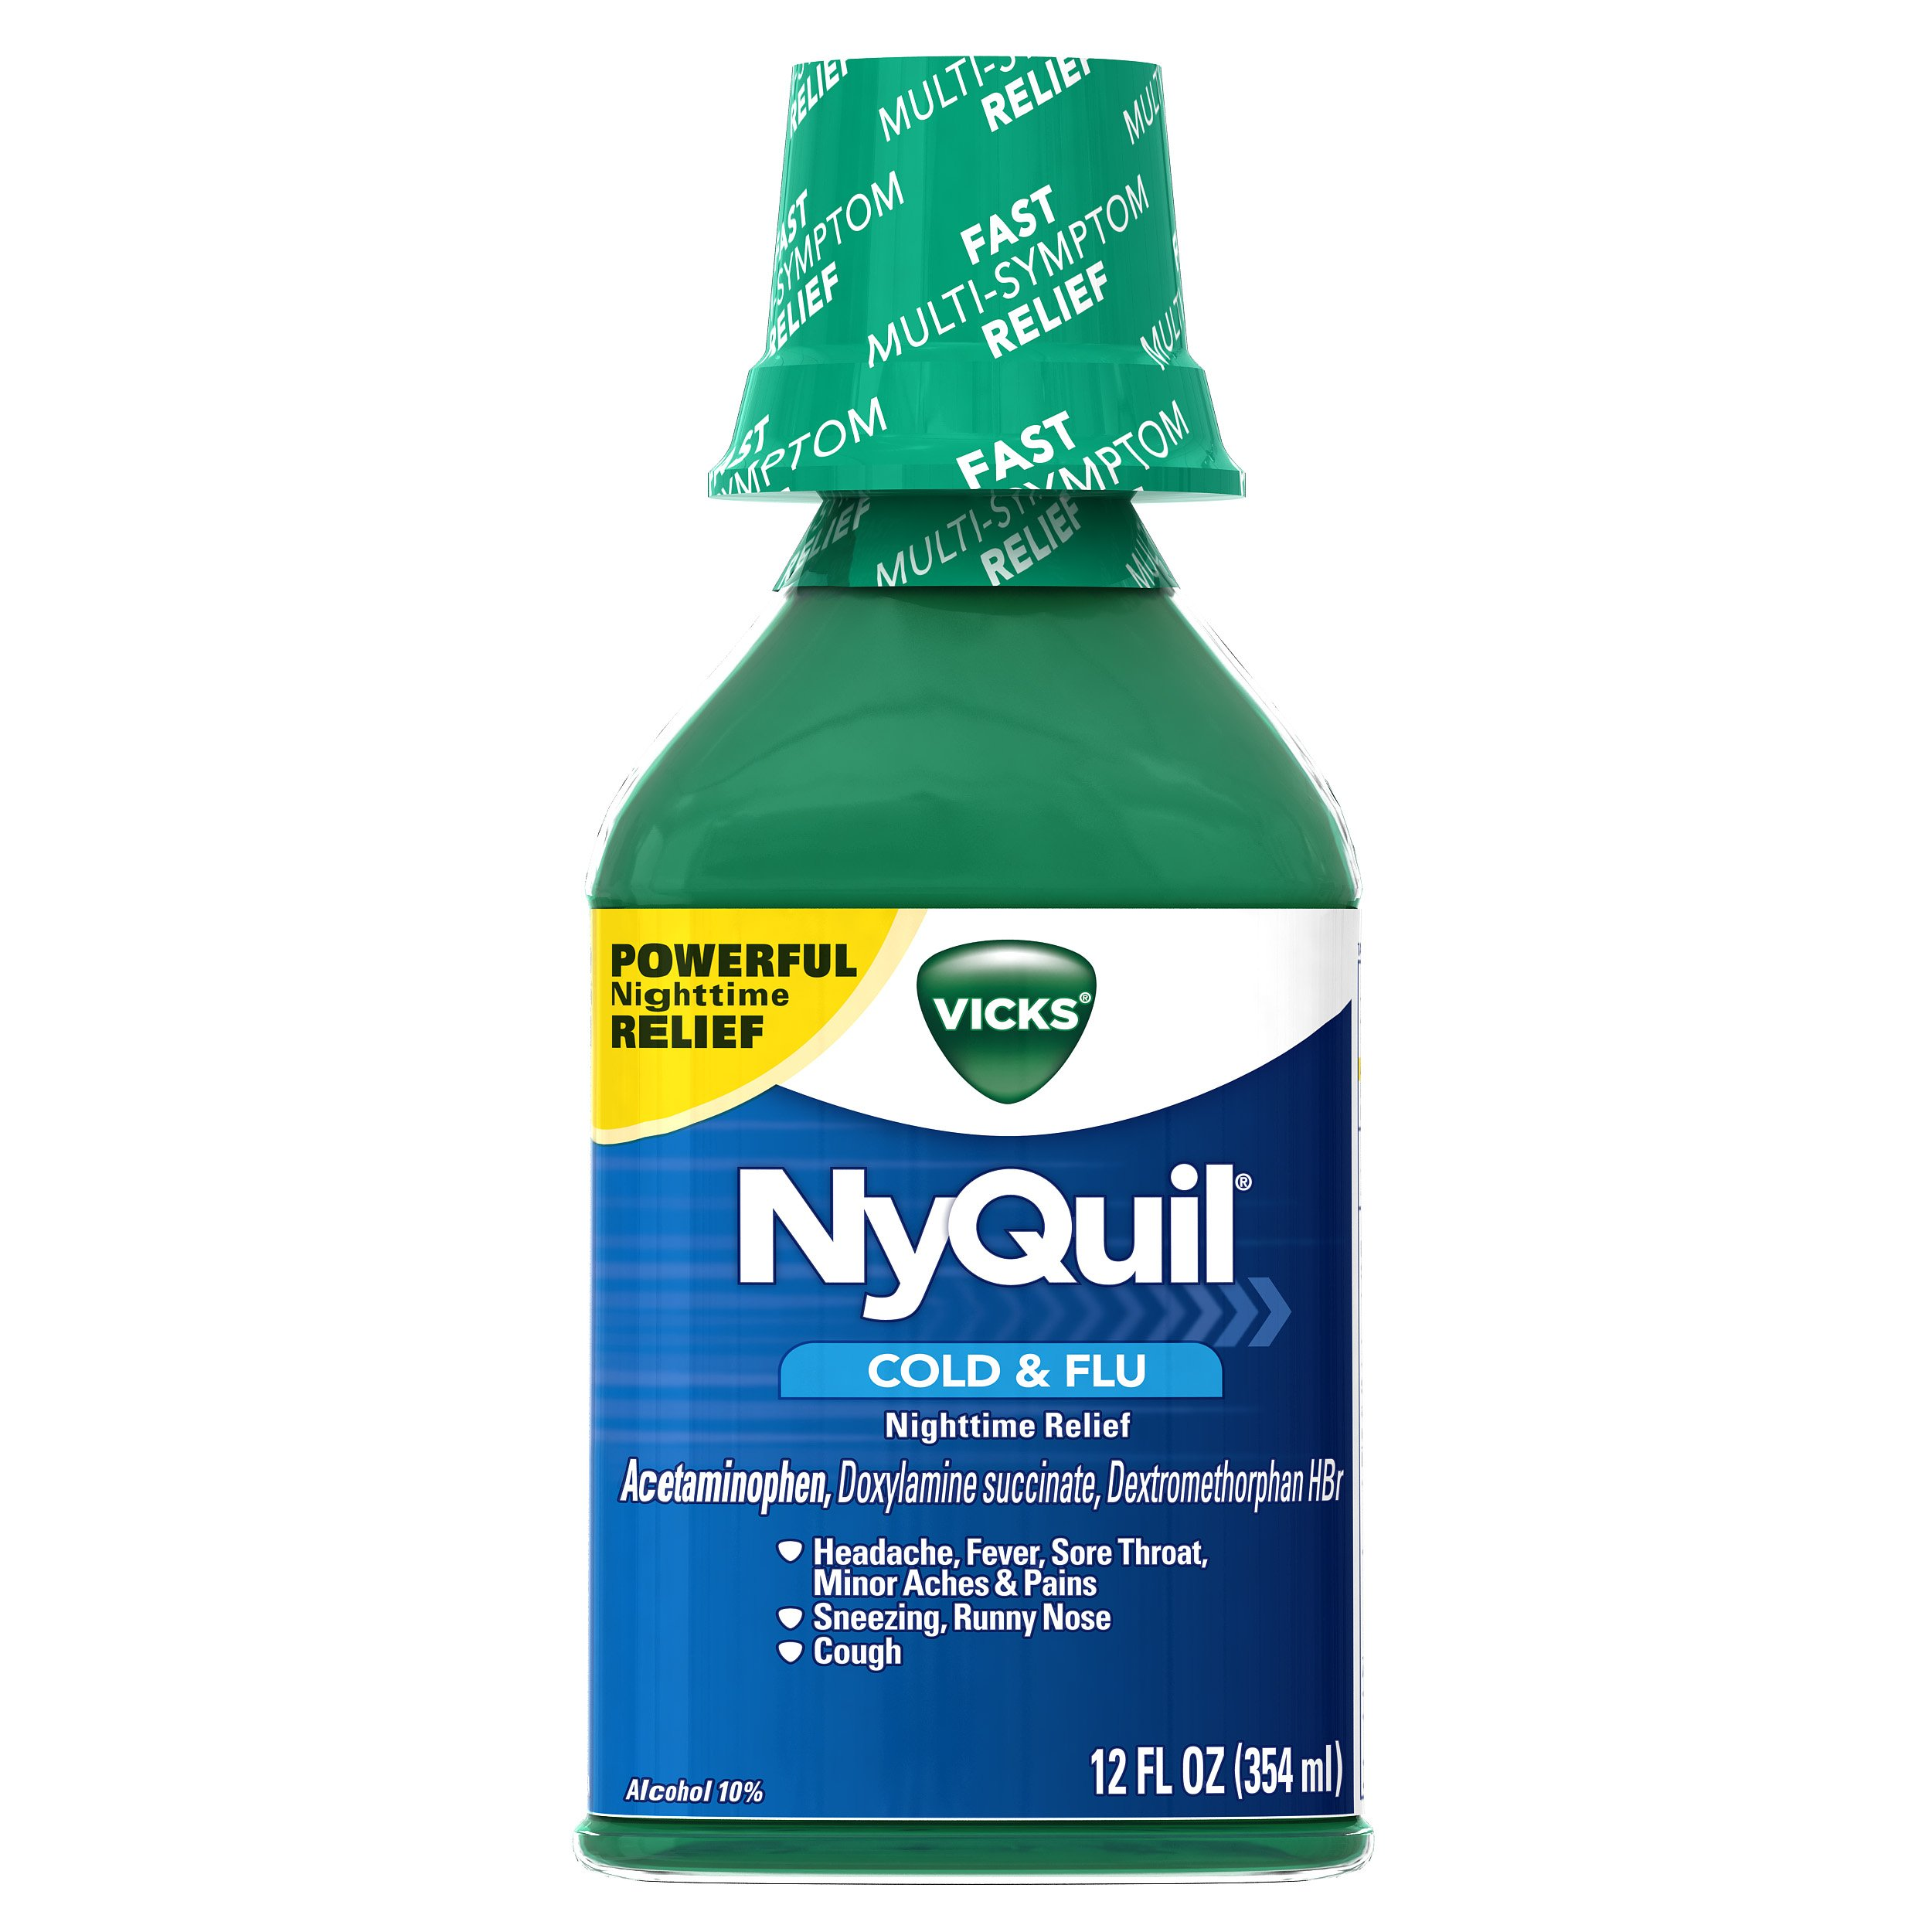 Vicks NyQuil Cold & Flu Nighttime Relief Original Flavor Liquid 12 fl oz (Pack of 12)